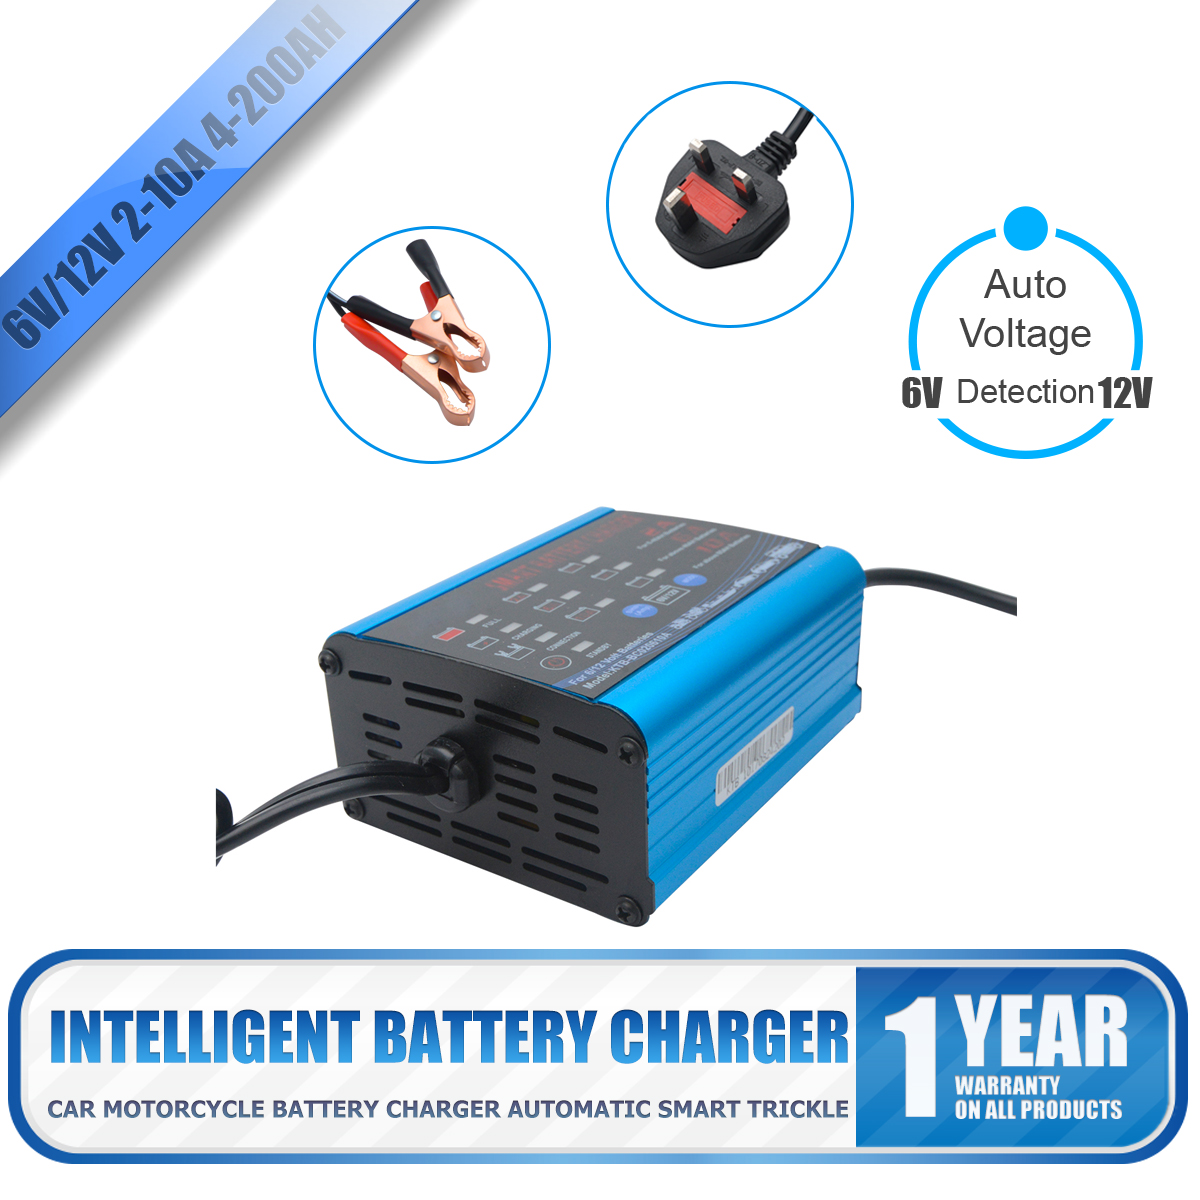 Battery Charger Maintainer For 6v 12v Lead Acid And Gel Batteries 2a Car With Short Circuit Protection 6a 10a New 7807963690728 Ebay